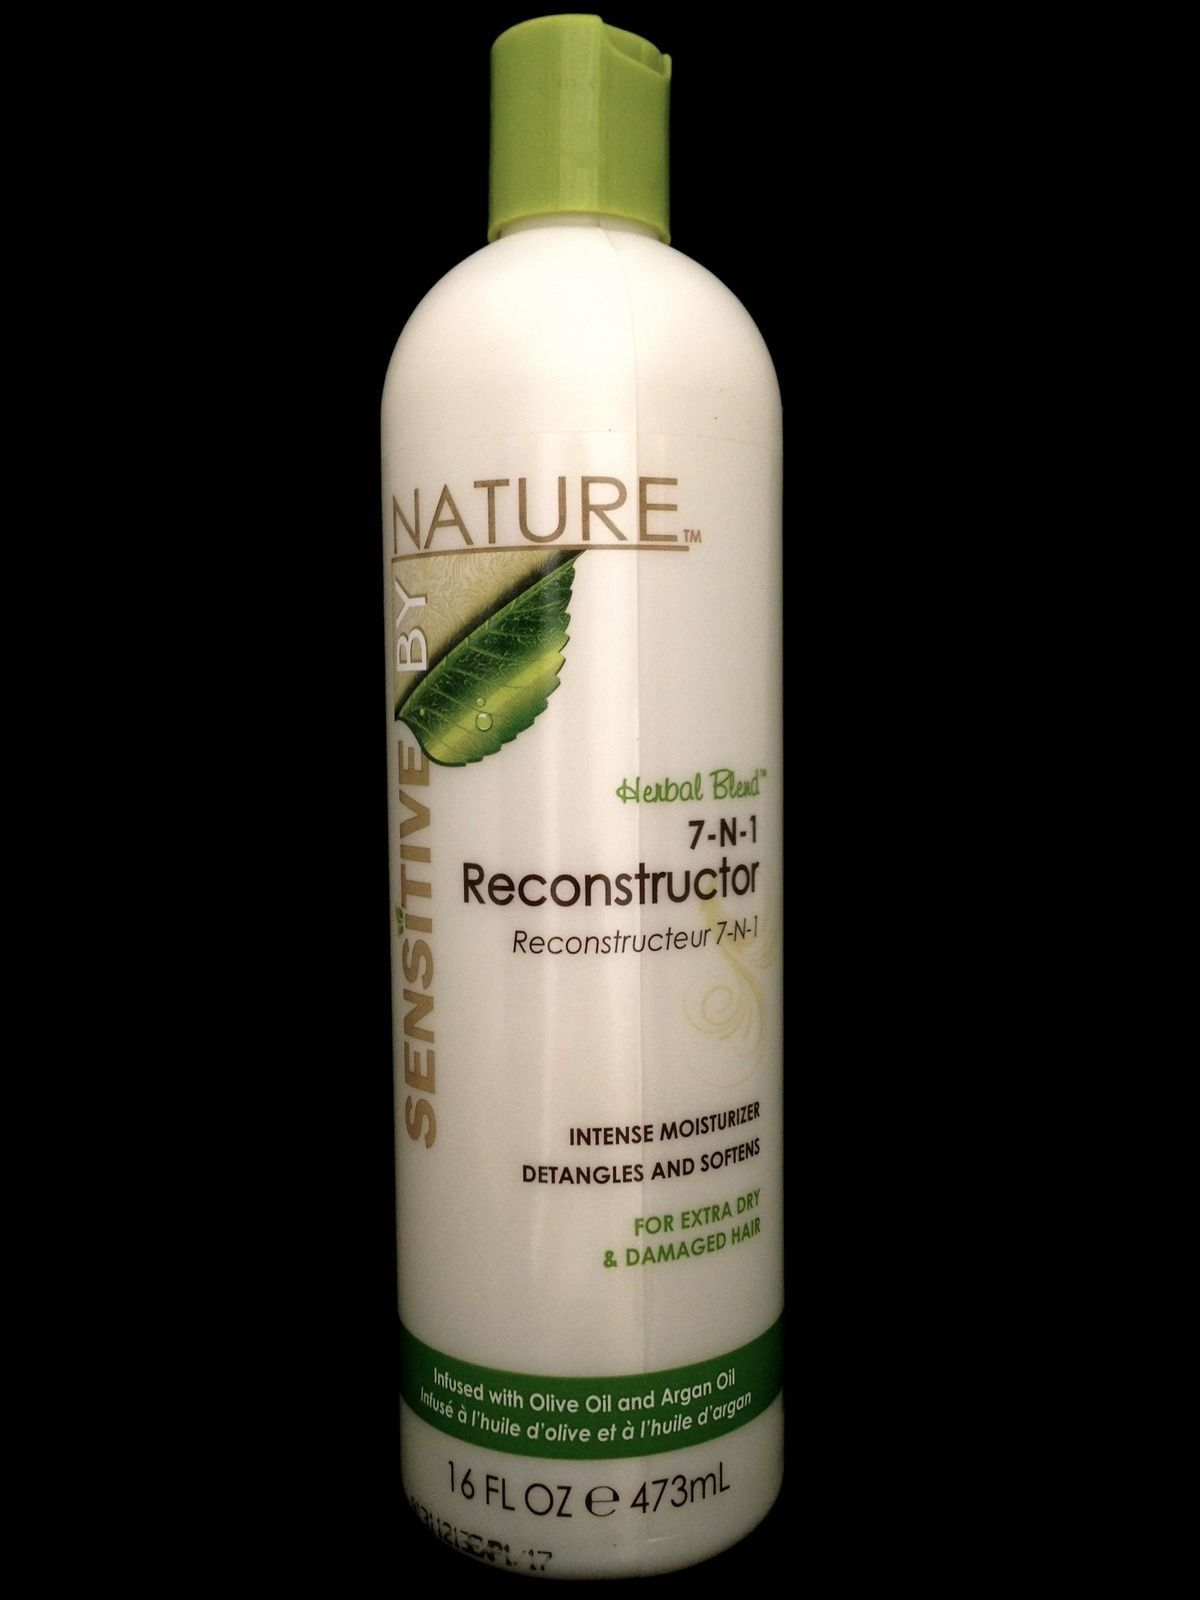 SENSITIVE BY NATURE HERBAL BLEND 7-N-1 RECONSTRUCTOR INTENSE MOISTURIZER 16oz